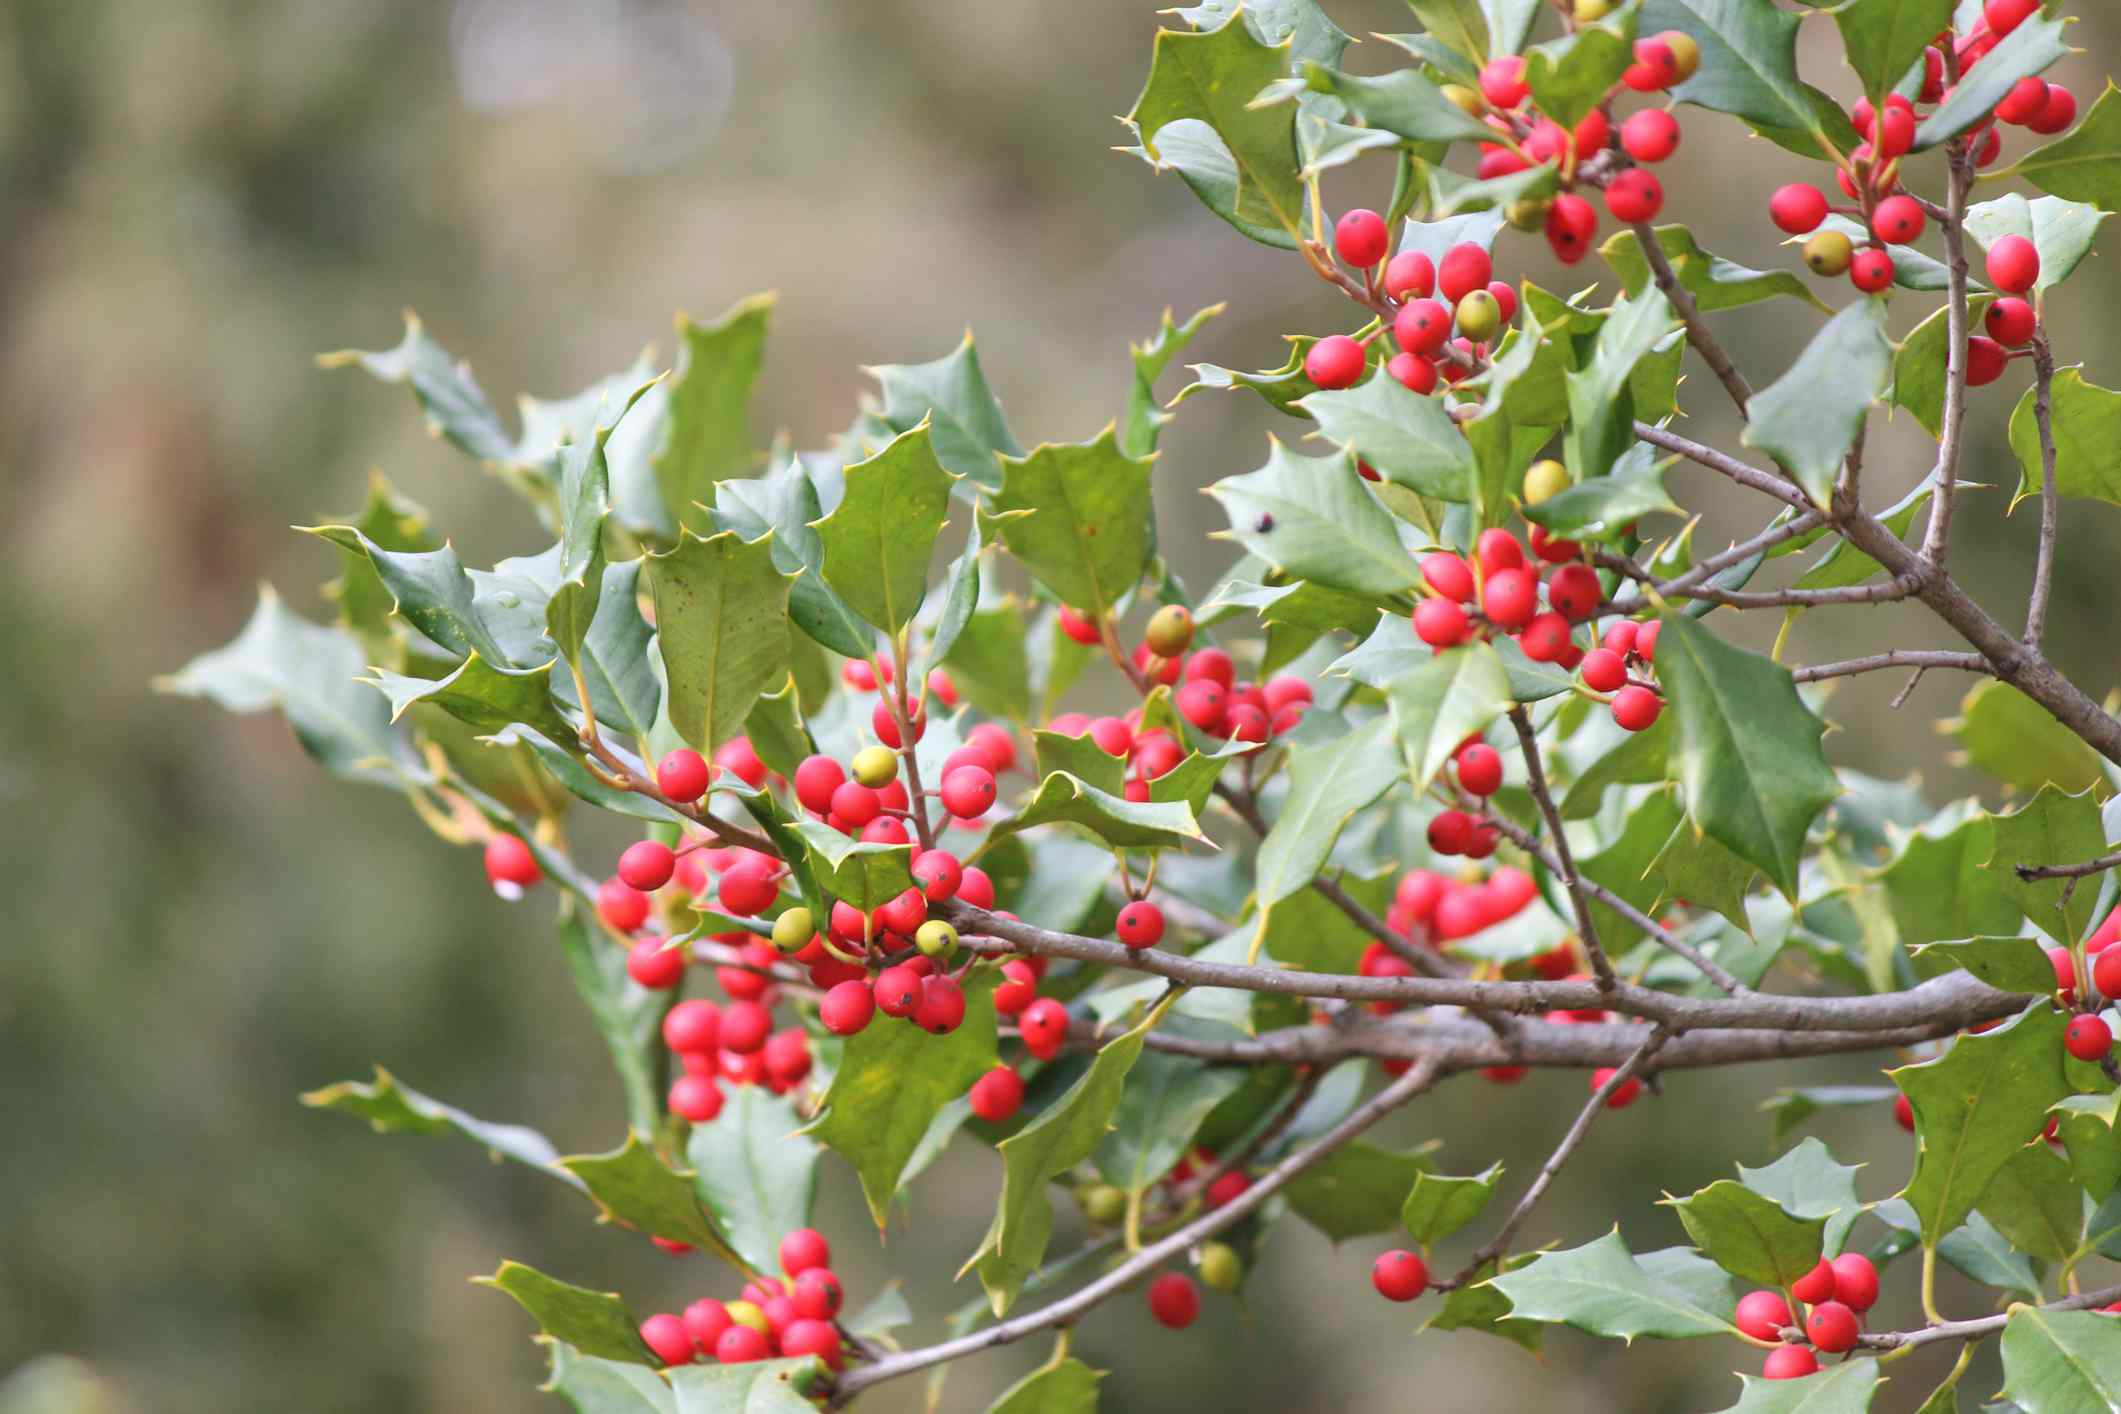 Branches and berries on an American Holly Tree.